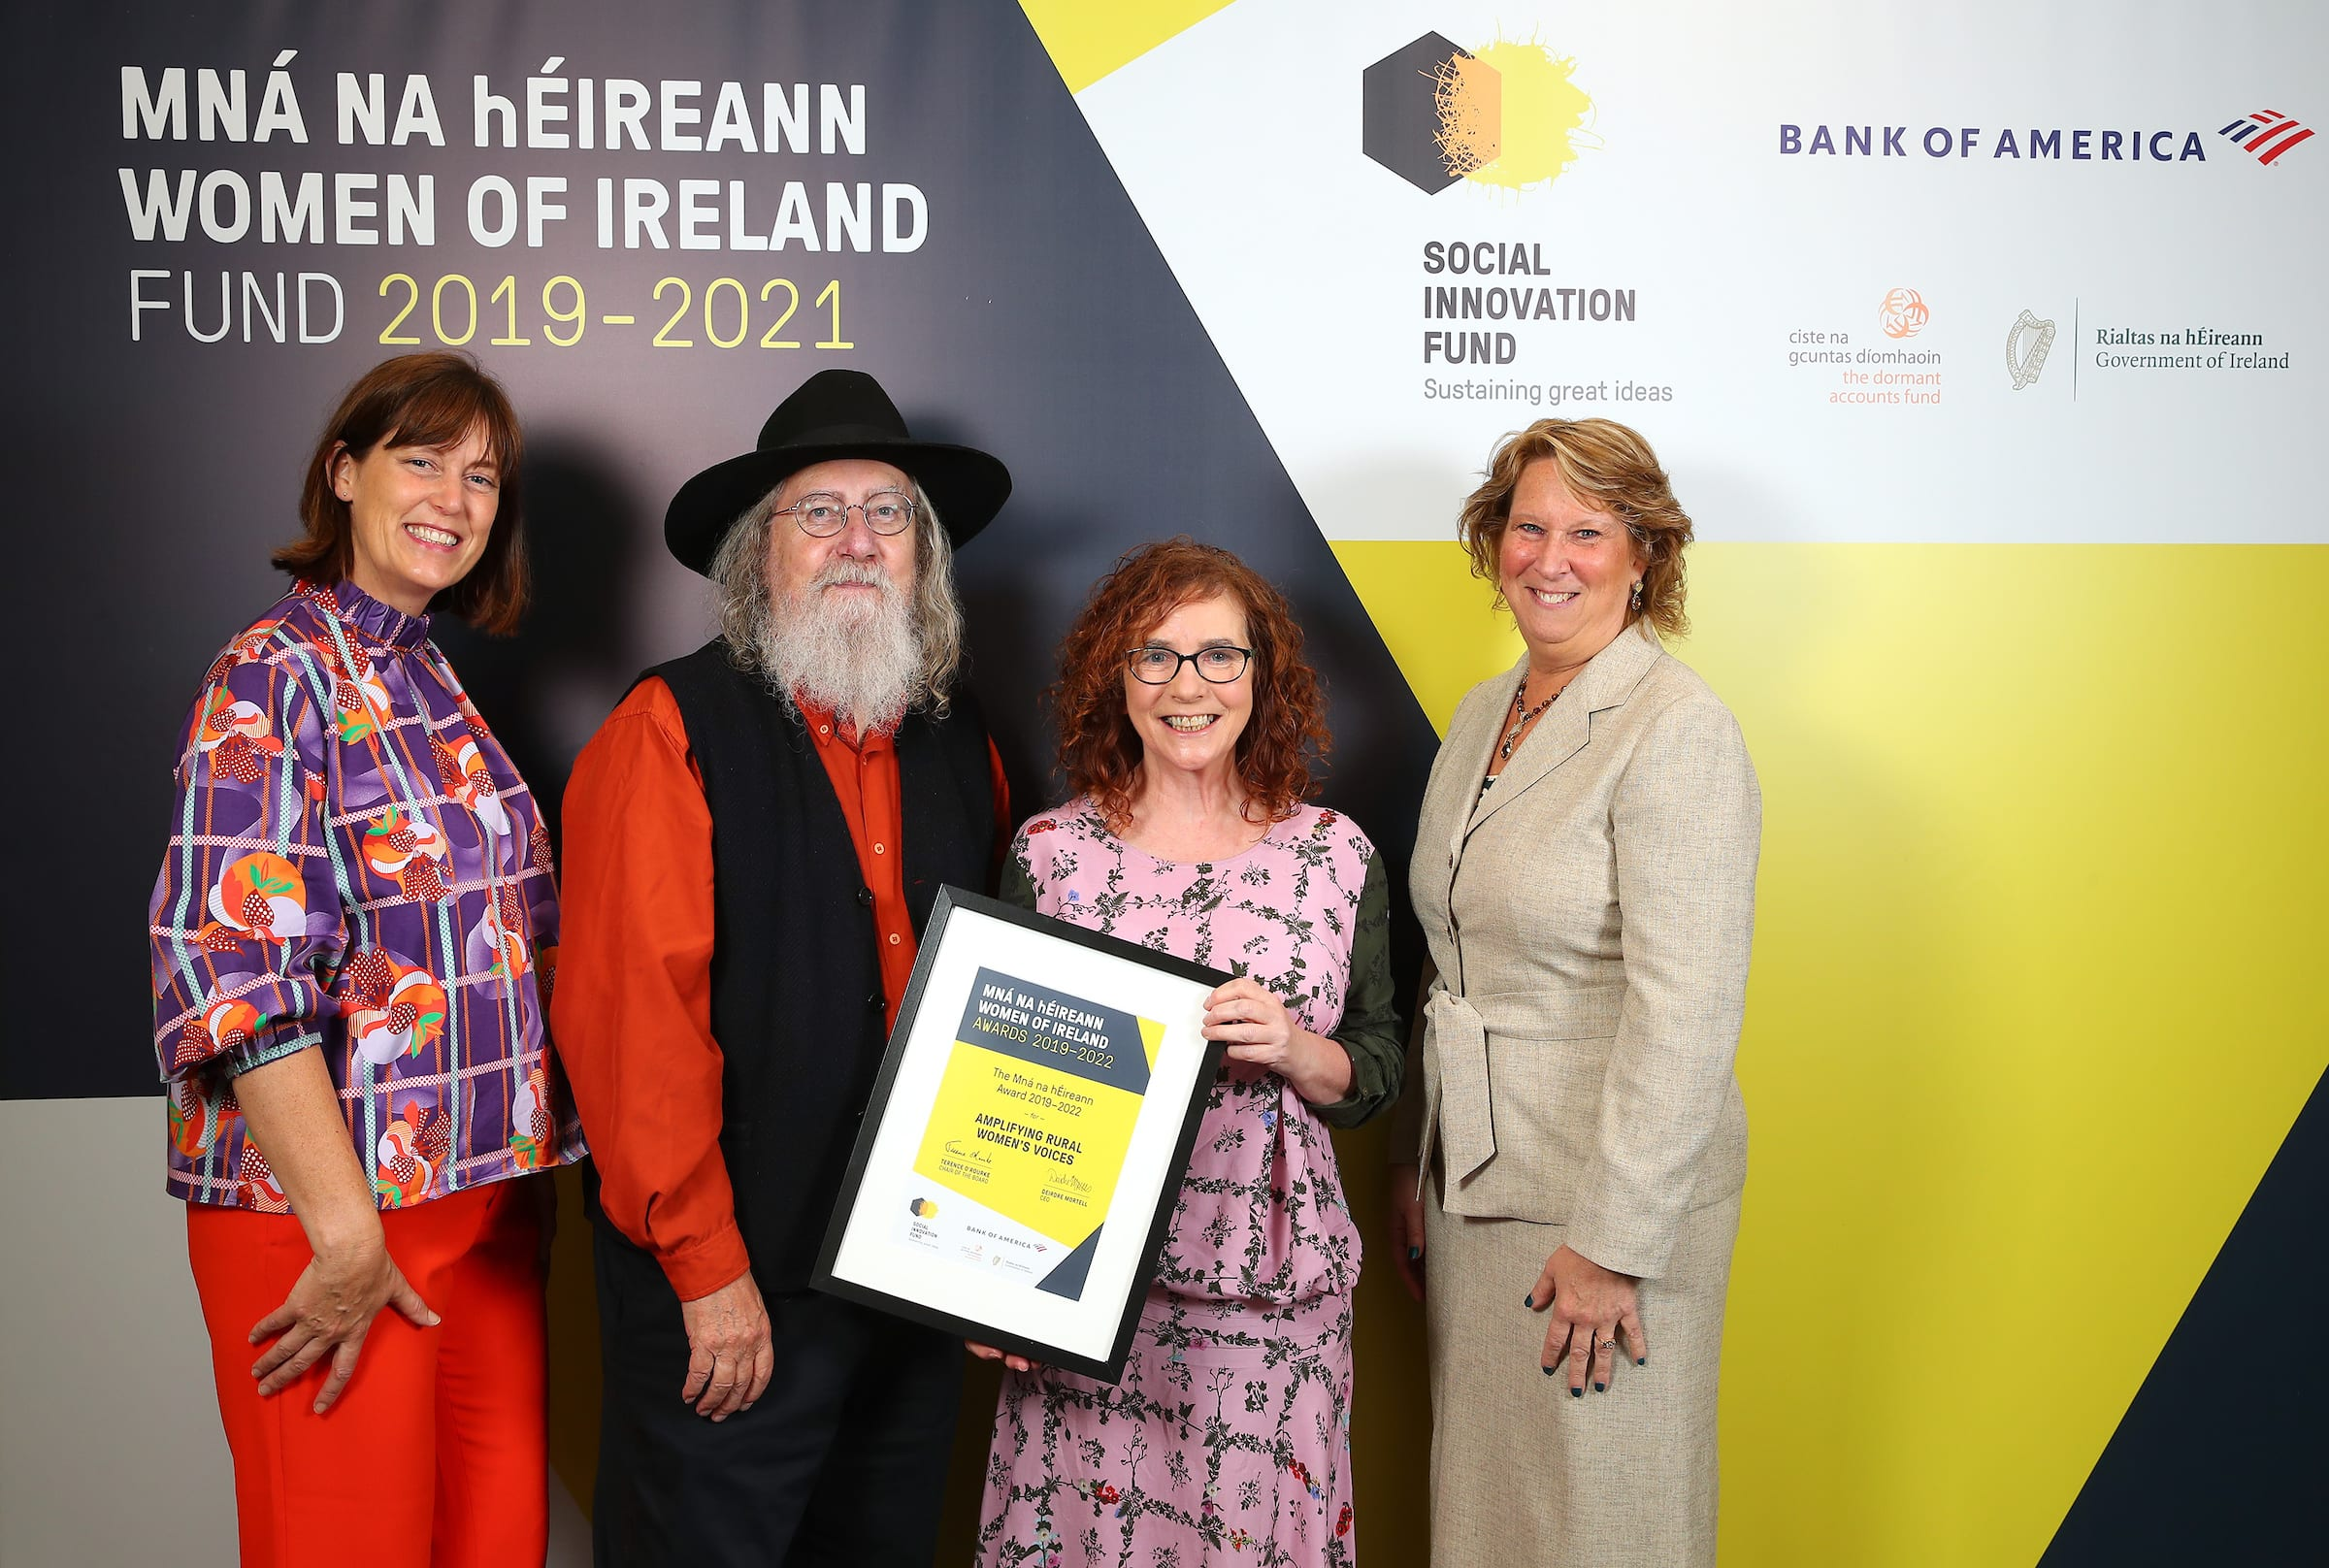 Galway-based Amplifying Rural Women's Voices to receive part of €1.8m Mná na hÉireann Fund